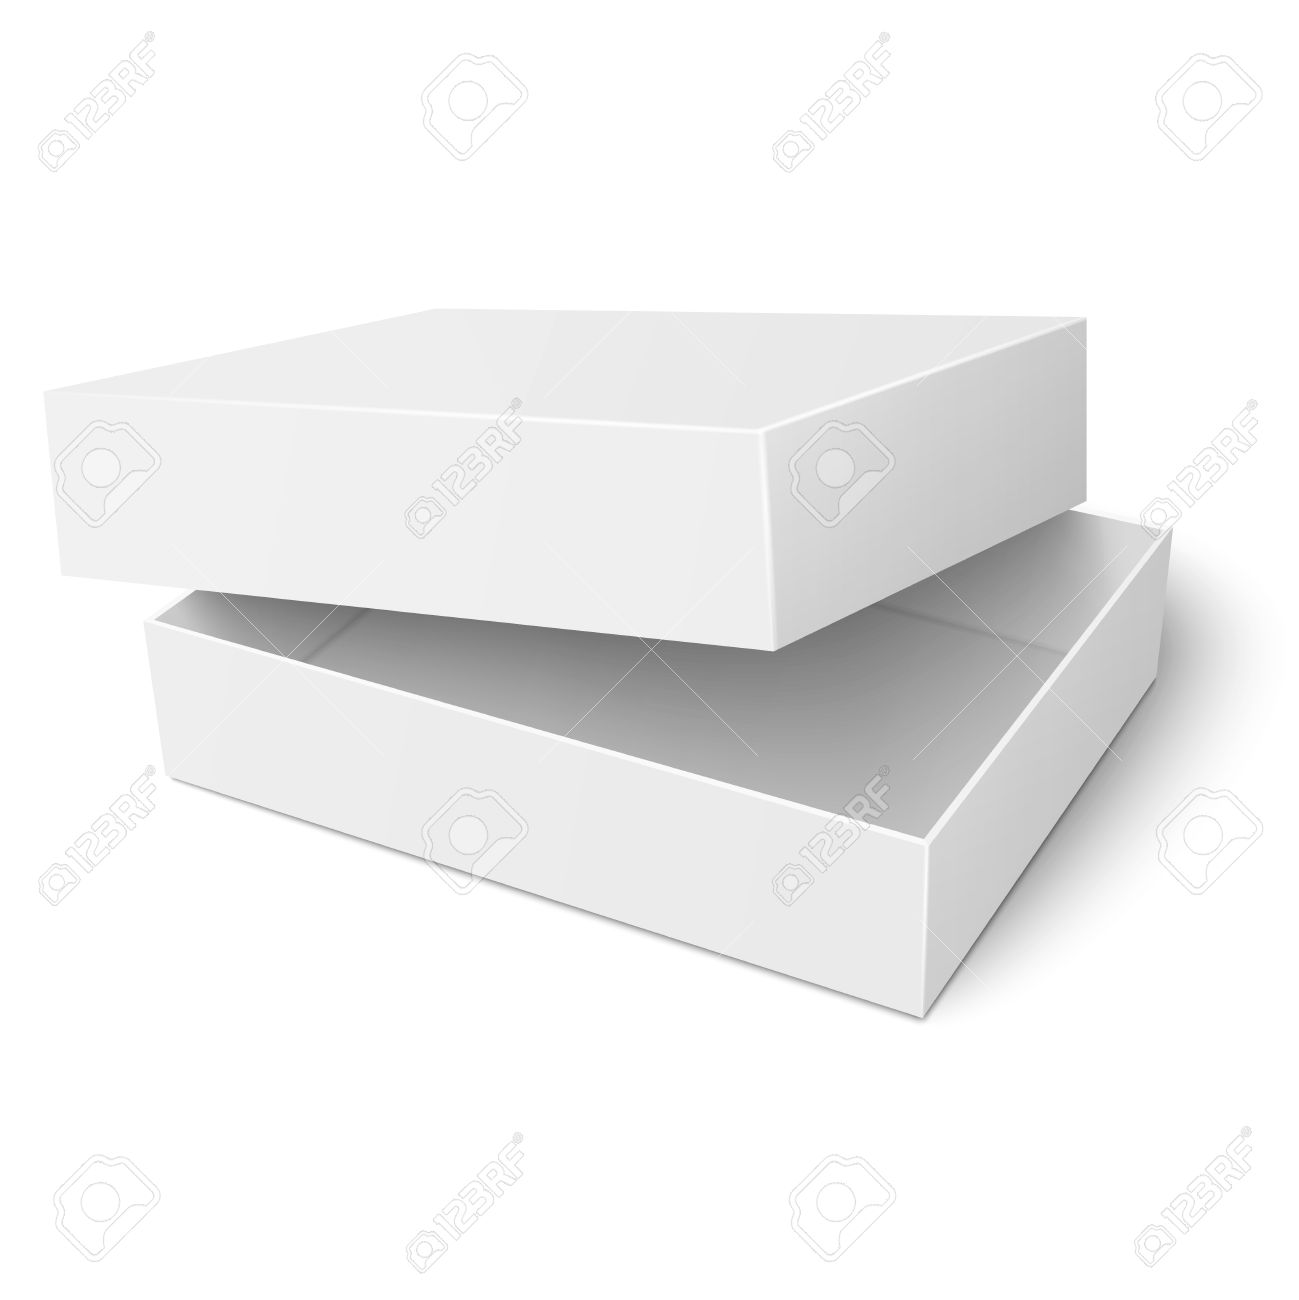 Template Of Blank Paper Or Cardboard Box With Opened Lid Lying ...